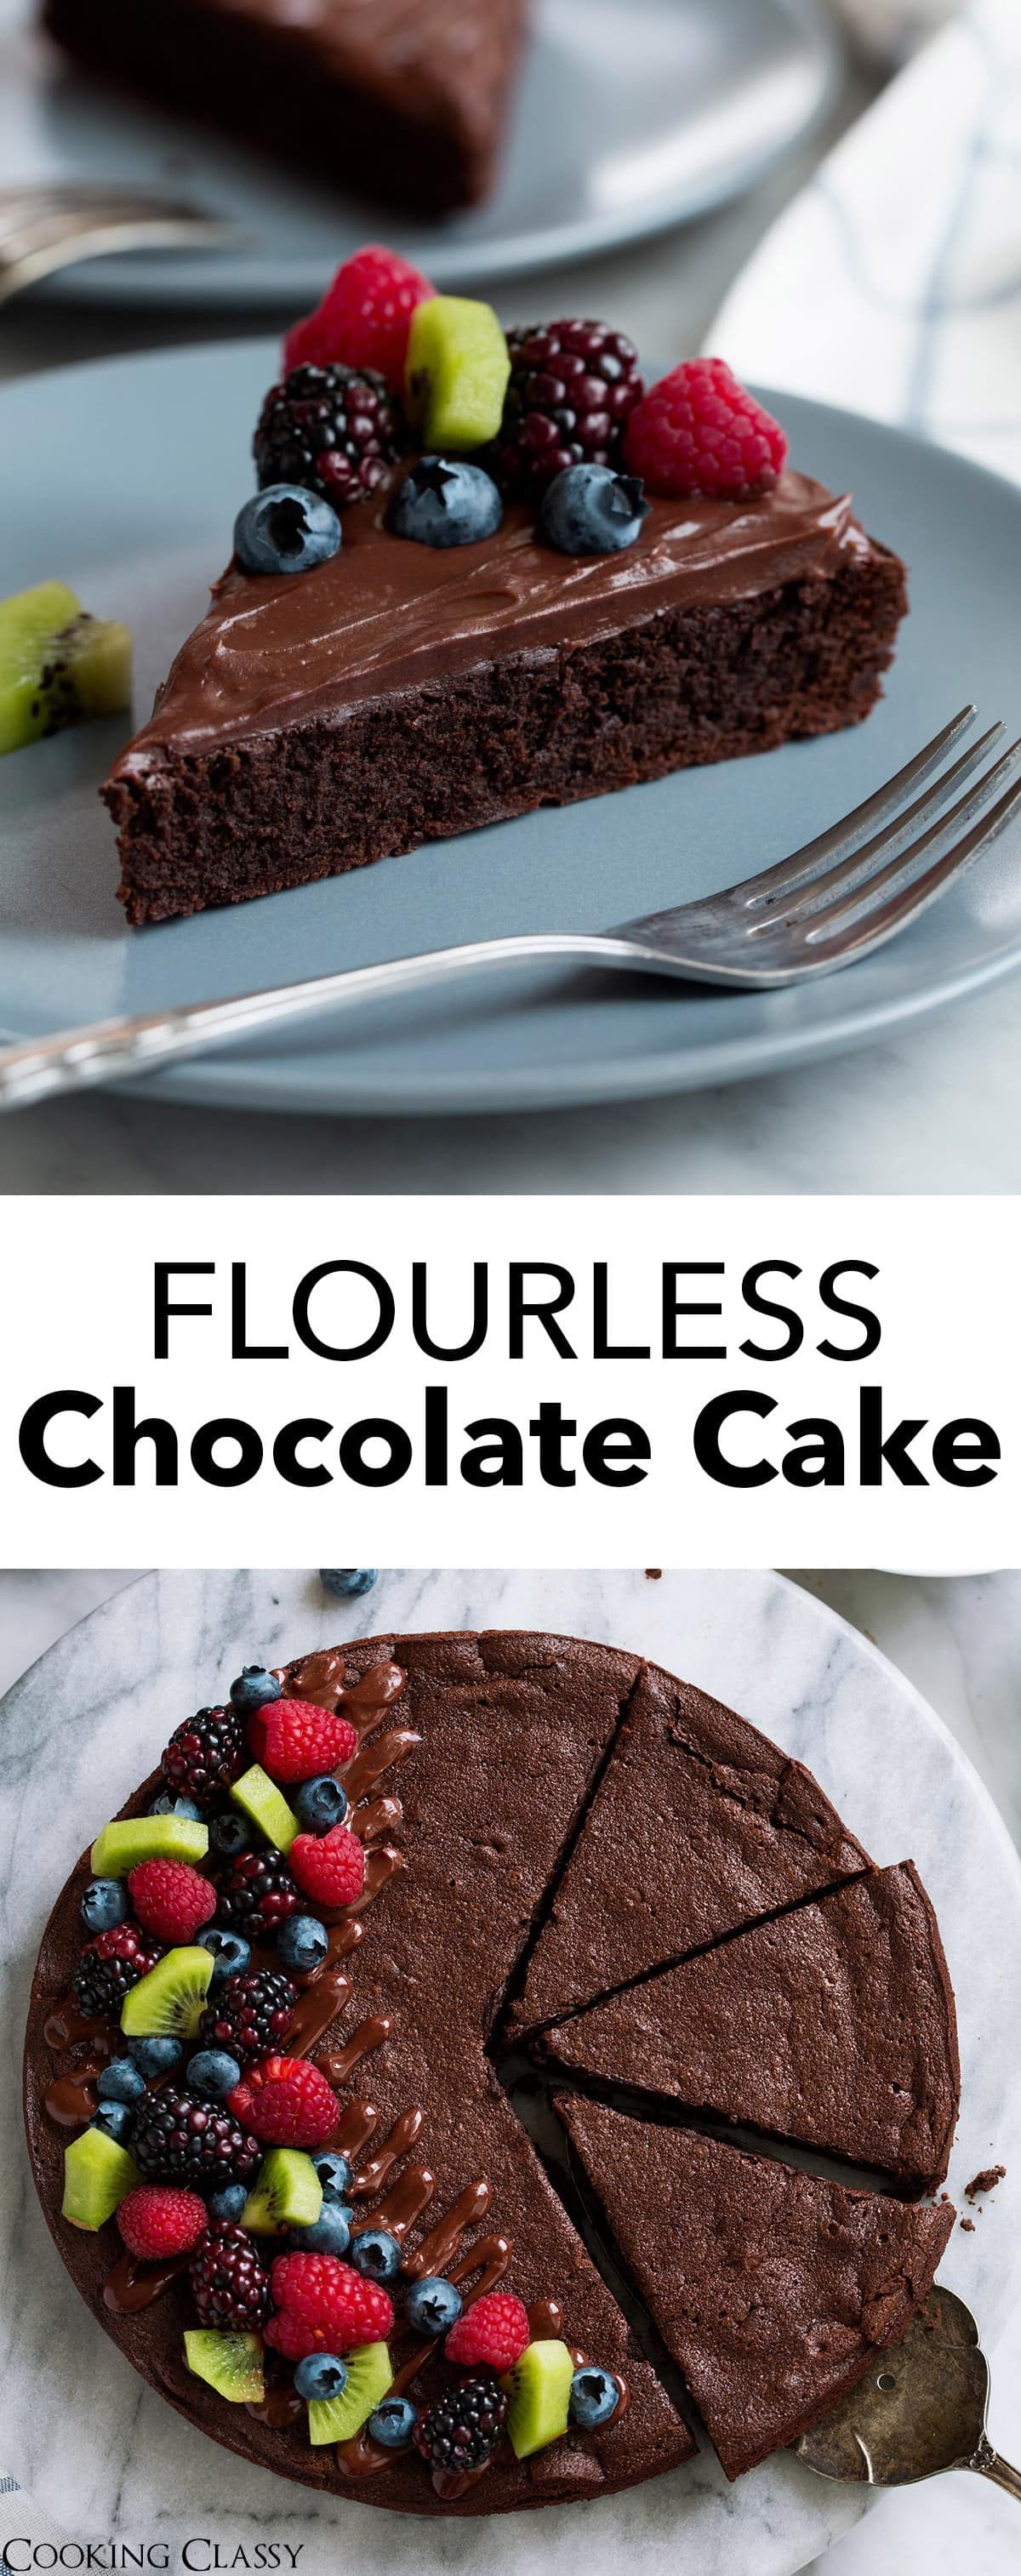 Flourless Chocolate Cake - absolutely no flour, yet you won't miss it in the slightest! This heavenly cake will likely remind you of a rich, decadent brownie yet it's texture is one all it's own. Each bite just melts away in your mouth! Chocolate Cake - absolutely no flour, yet you won't miss it in the slightest! This heavenly cake will likely remind you of a rich, decadent brownie yet it's texture is one all it's own. Each bite just melts away in your mouth!